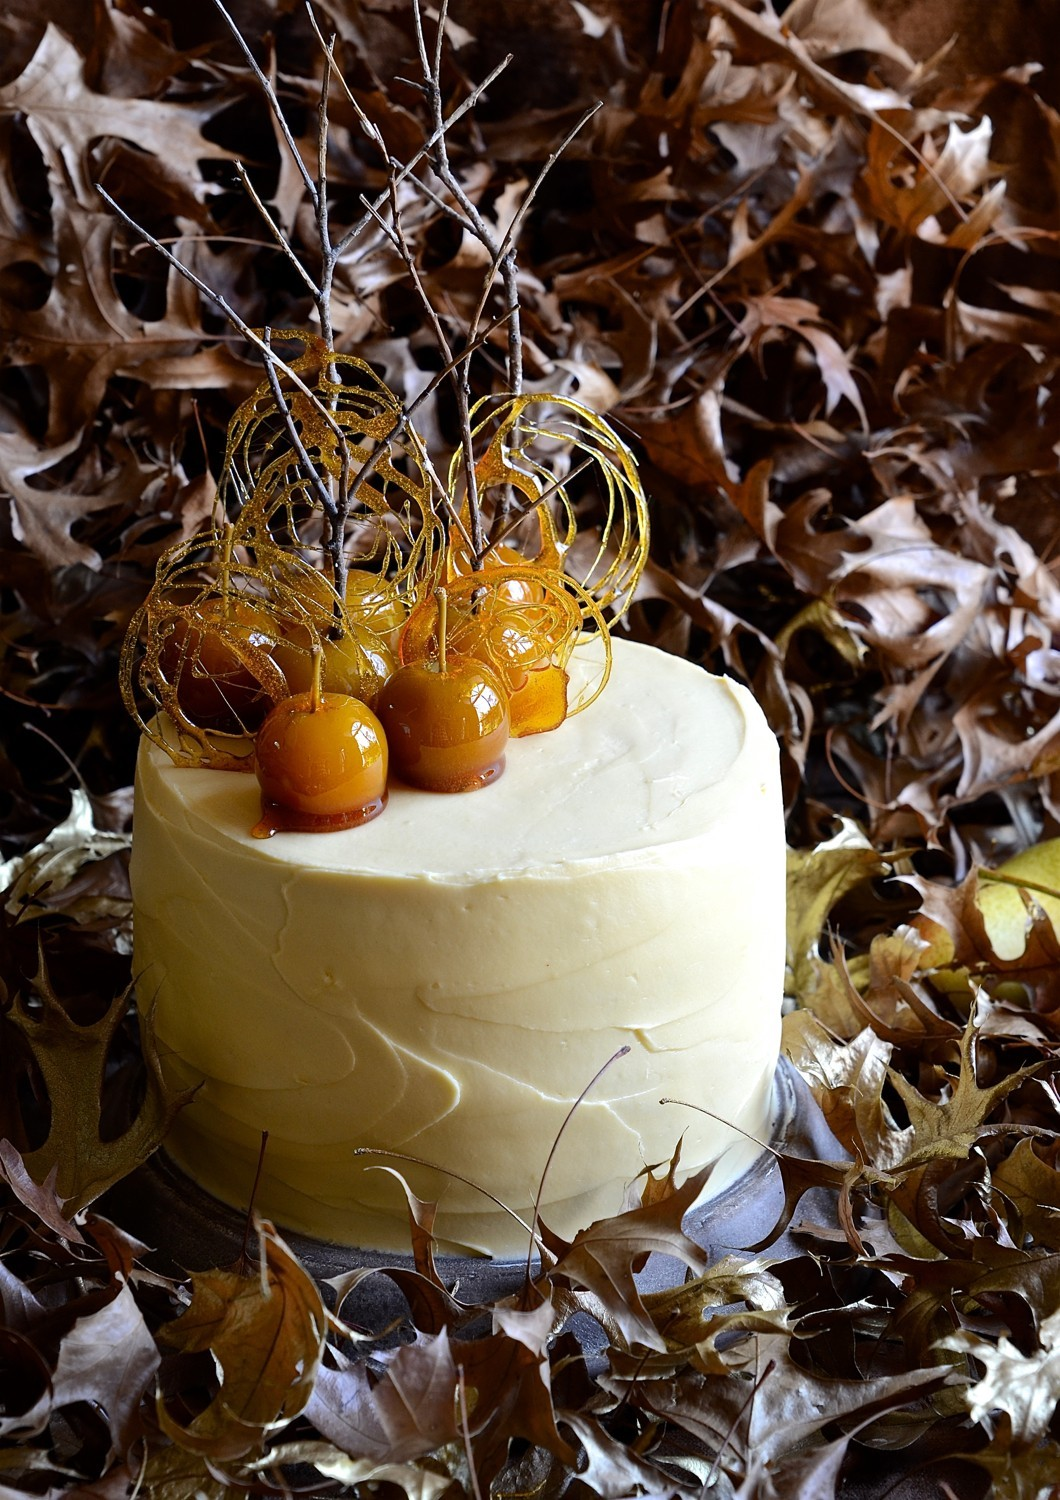 Pear and apple cake with maple frosting